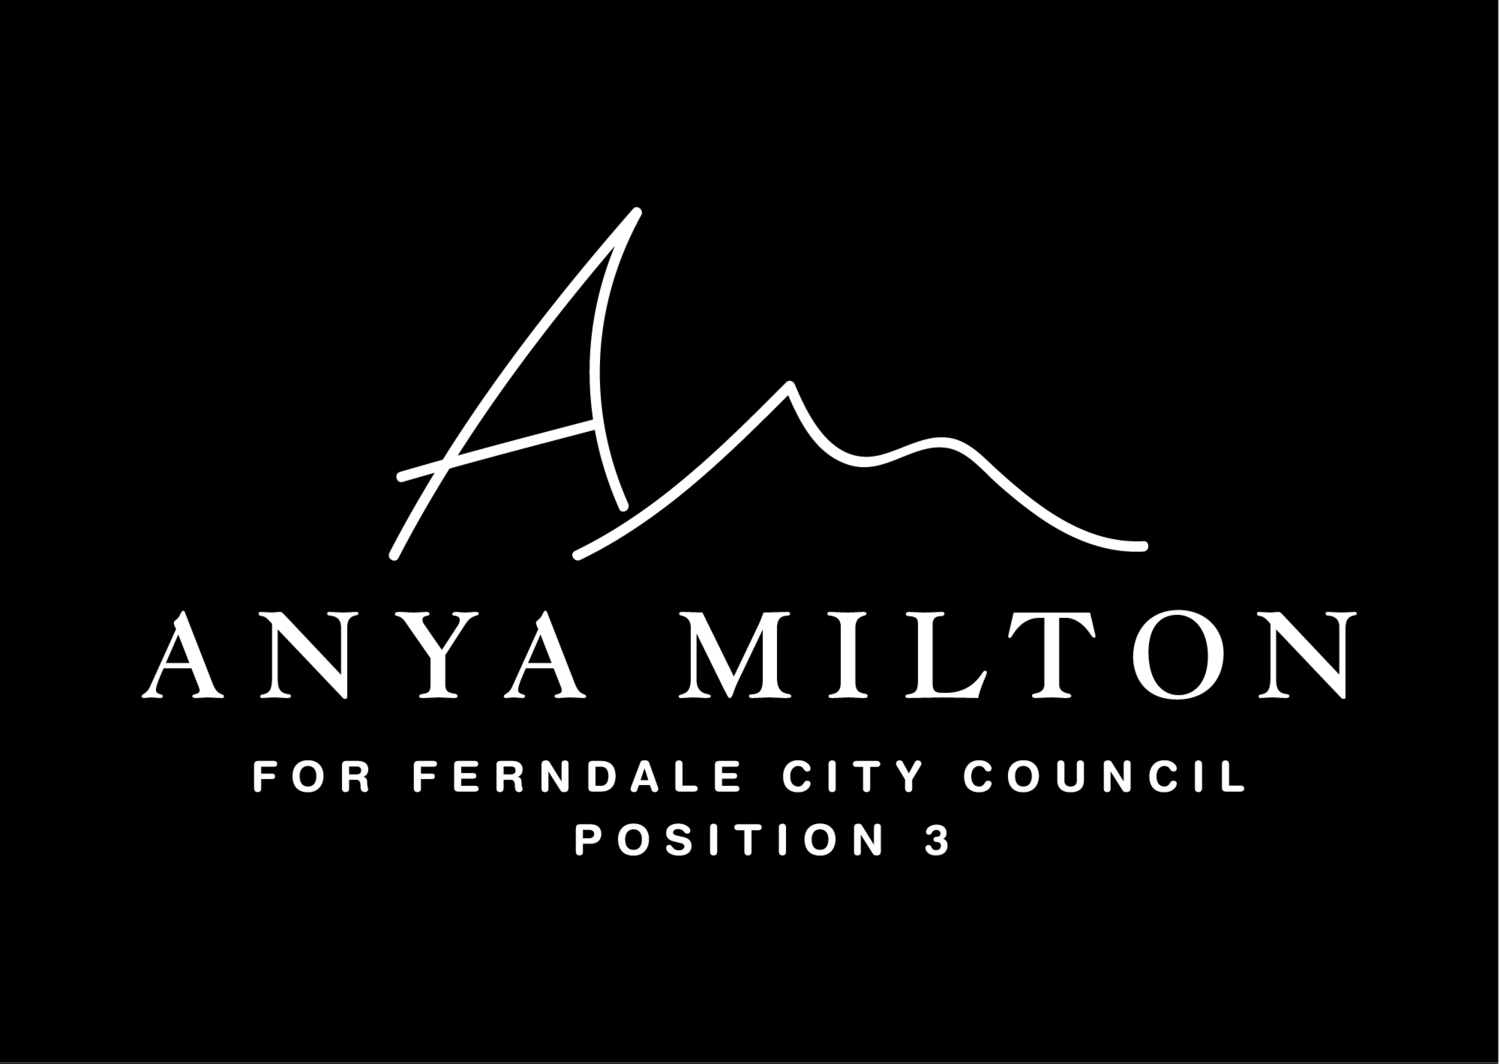 ANYA MILTON FOR CITY COUNCIL POSITION 3